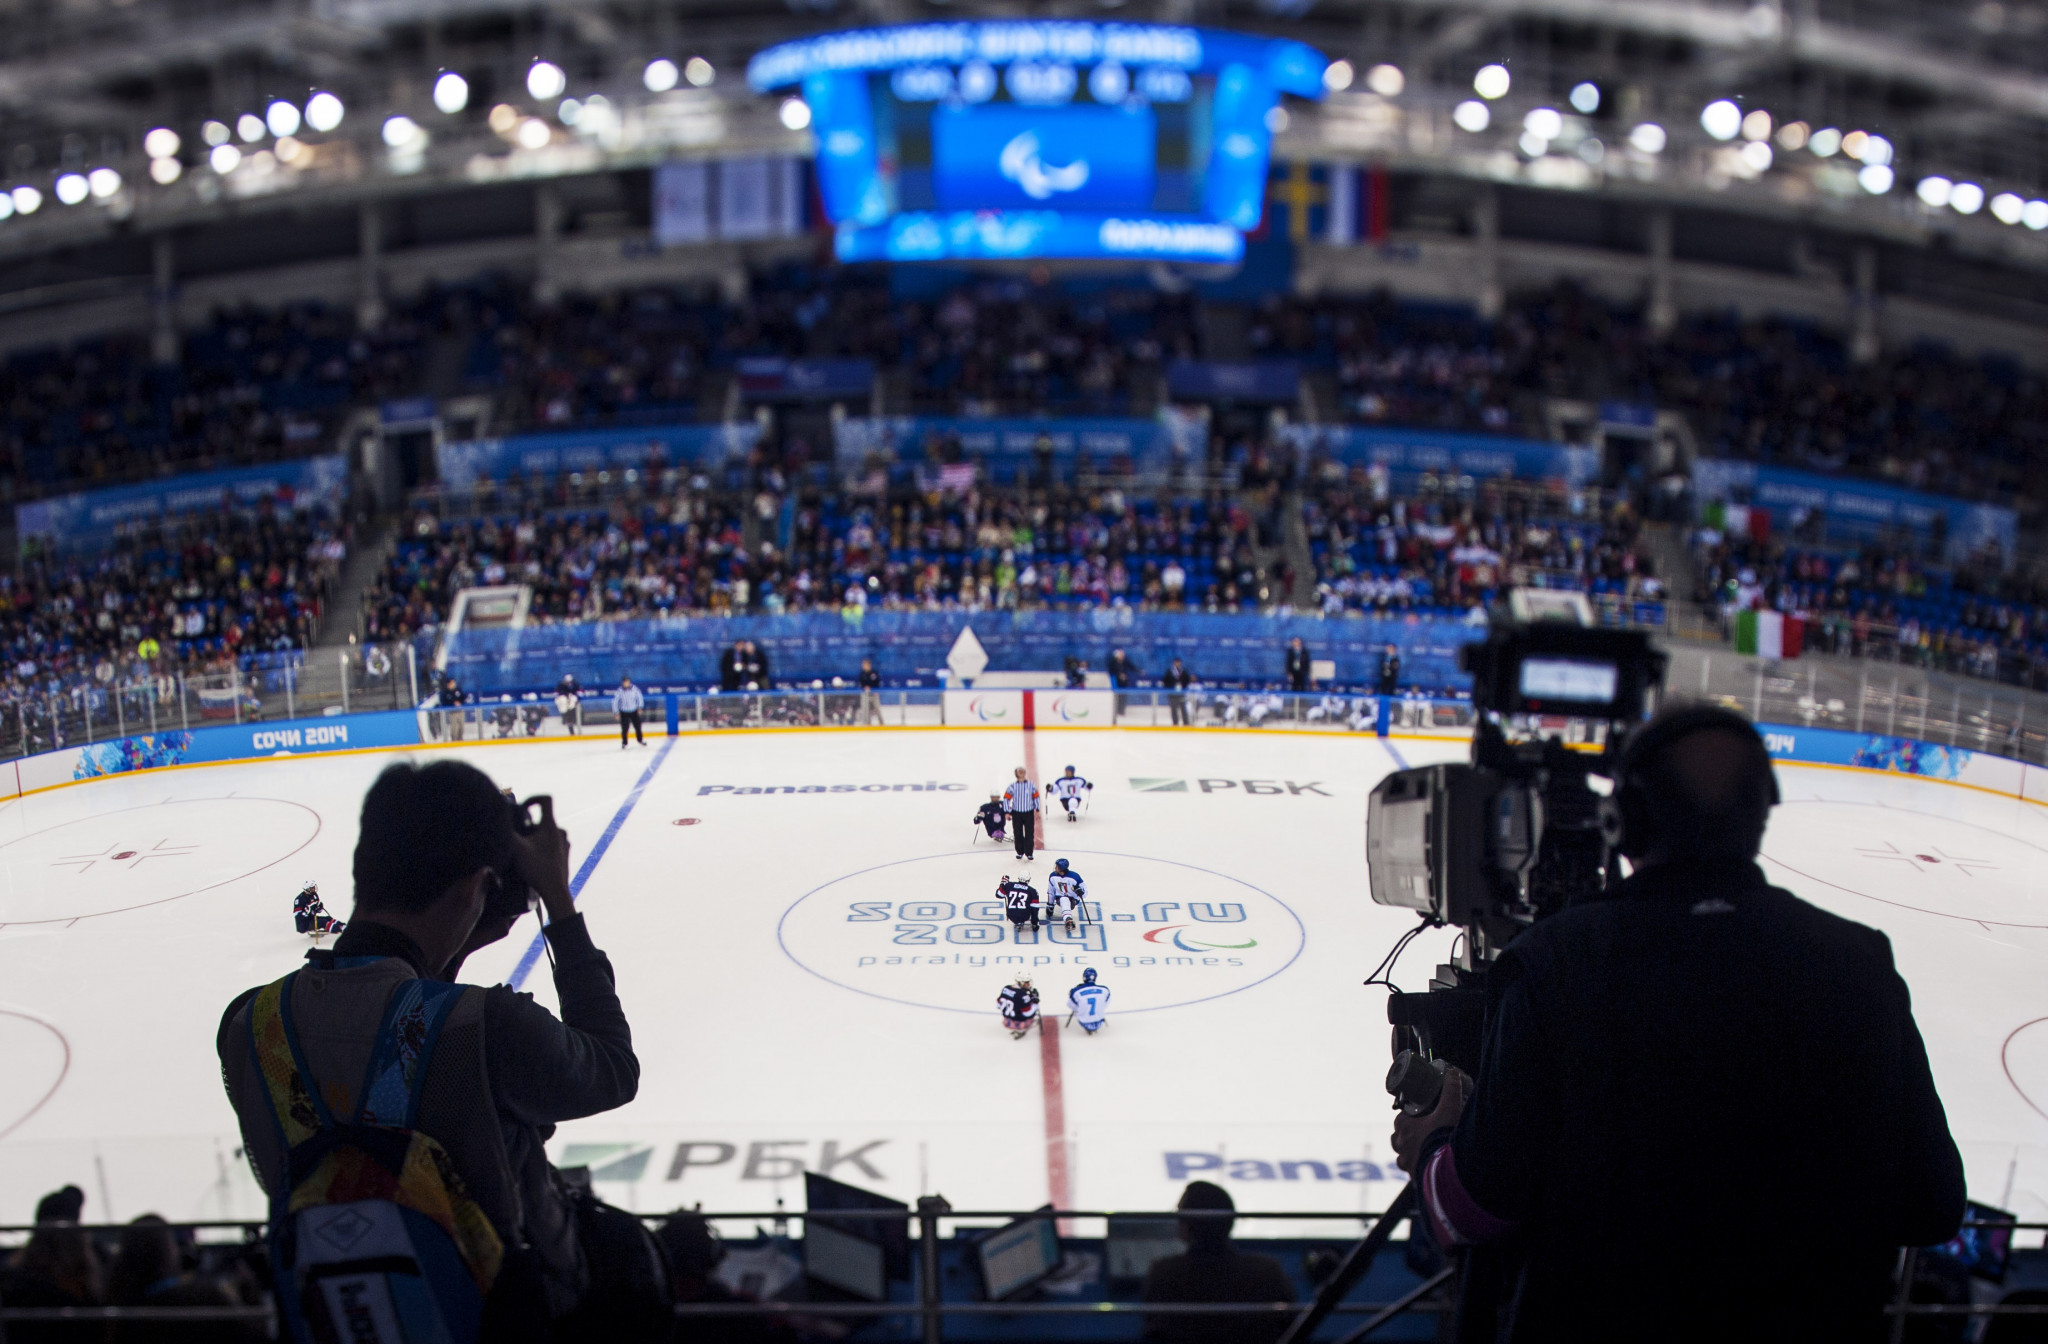 IPC launch media rights bidding process for Beijing 2022 and Paris 2024